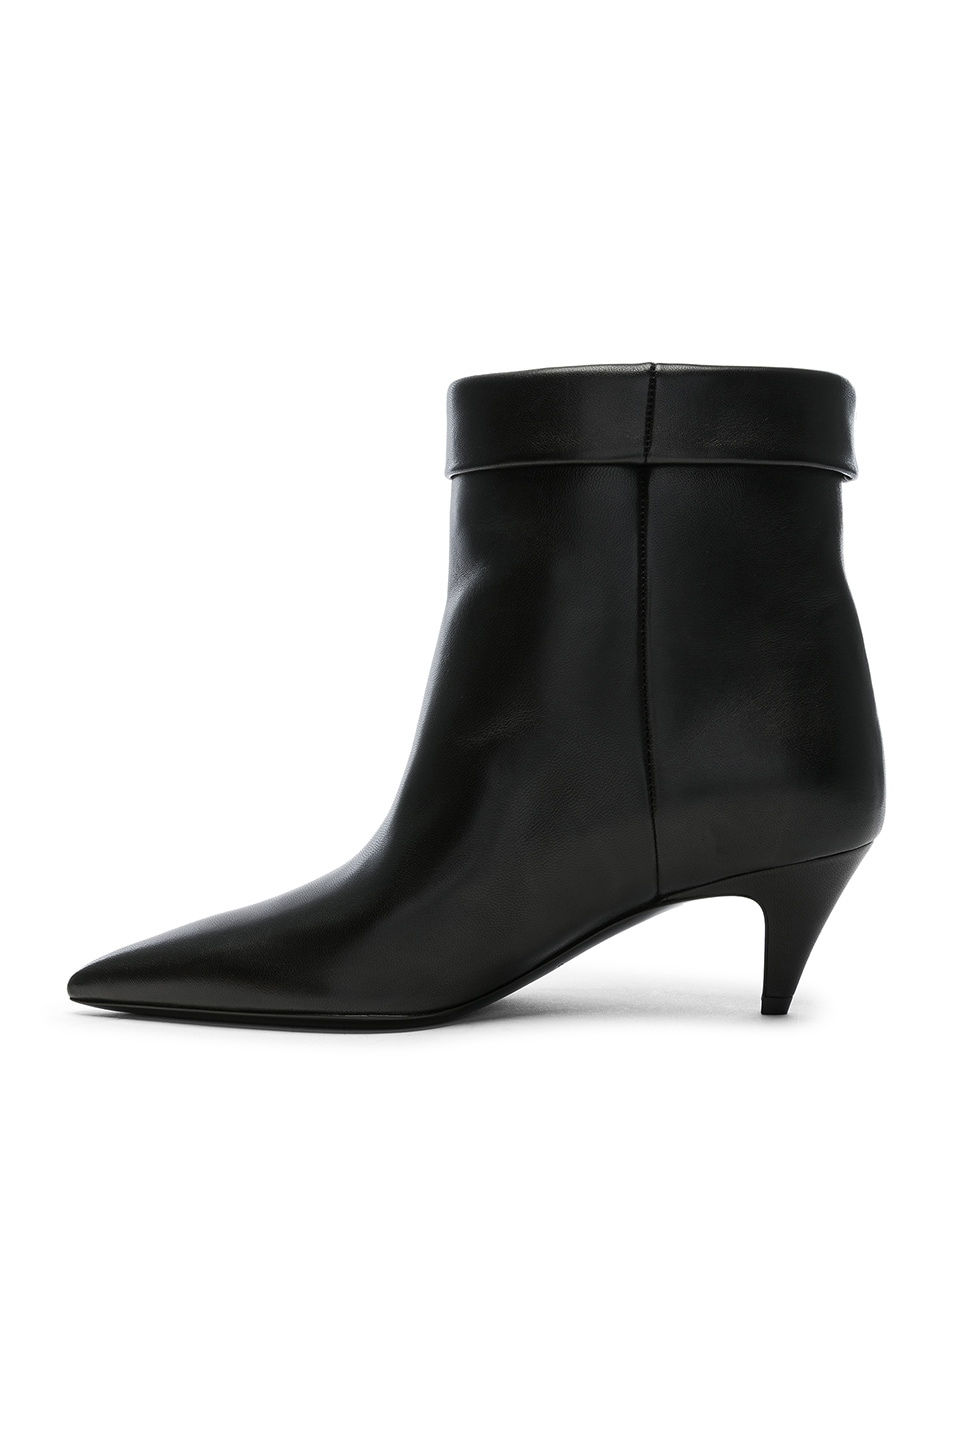 Image 5 of Saint Laurent Charlotte Kitten Heel Ankle Boots in Black